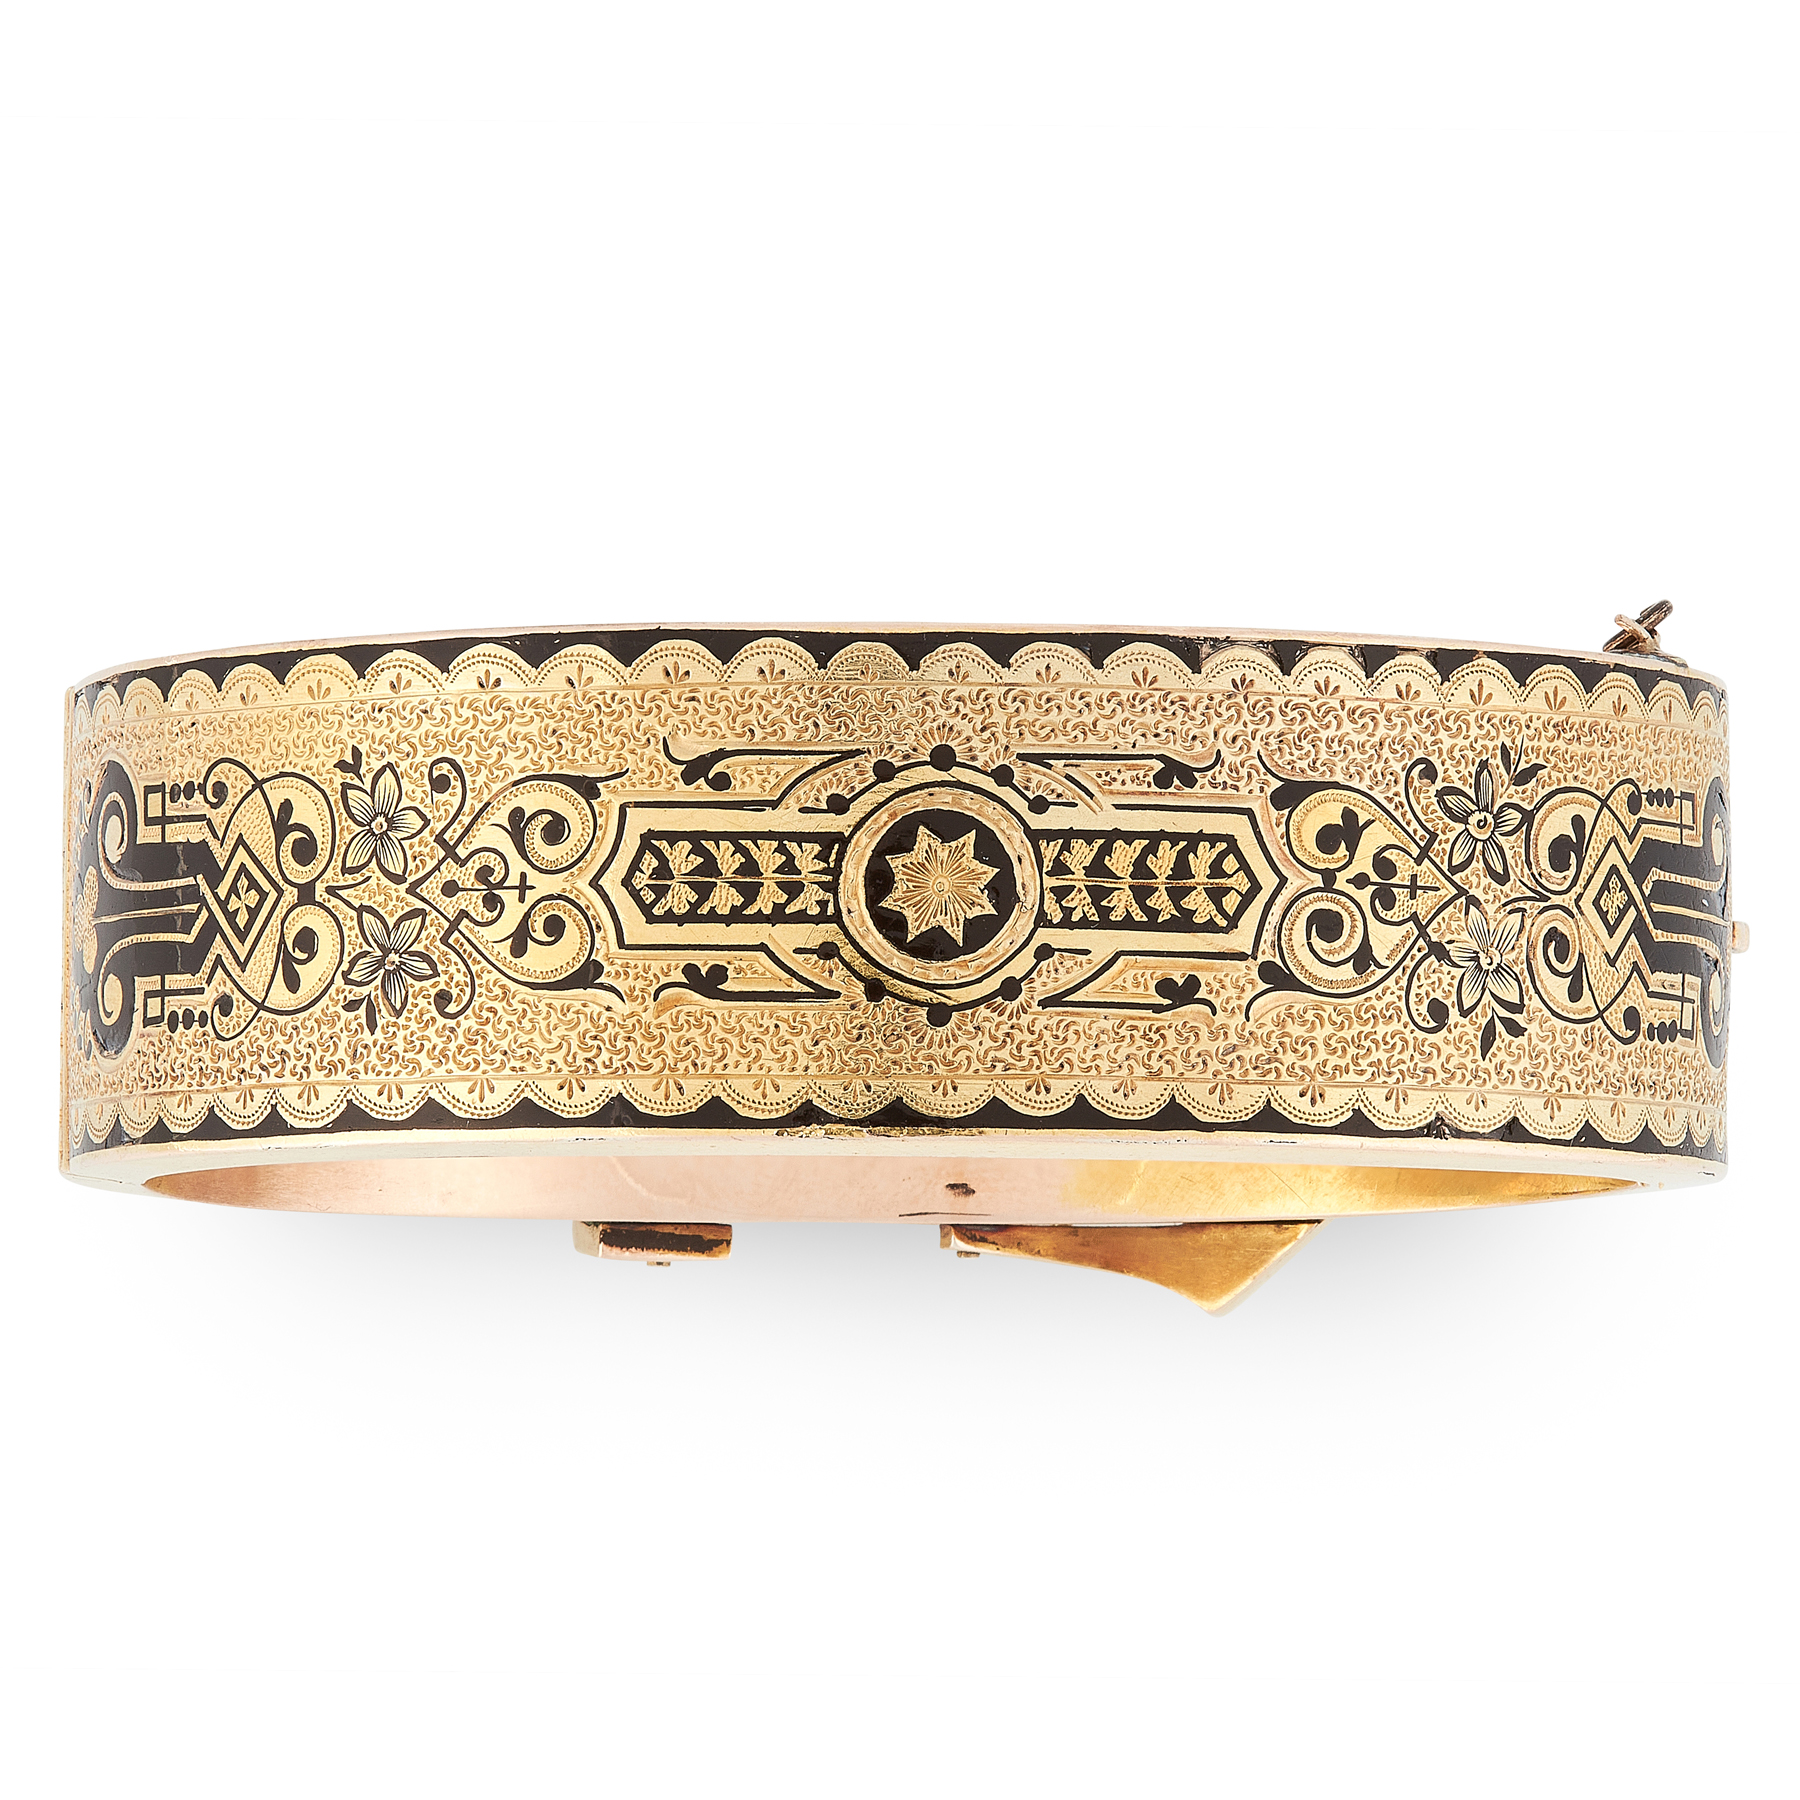 A FINE ANTIQUE ENAMEL BUCKLE BANGLE in yellow gold, designed as a fastened belt buckle, engraved and - Image 2 of 2